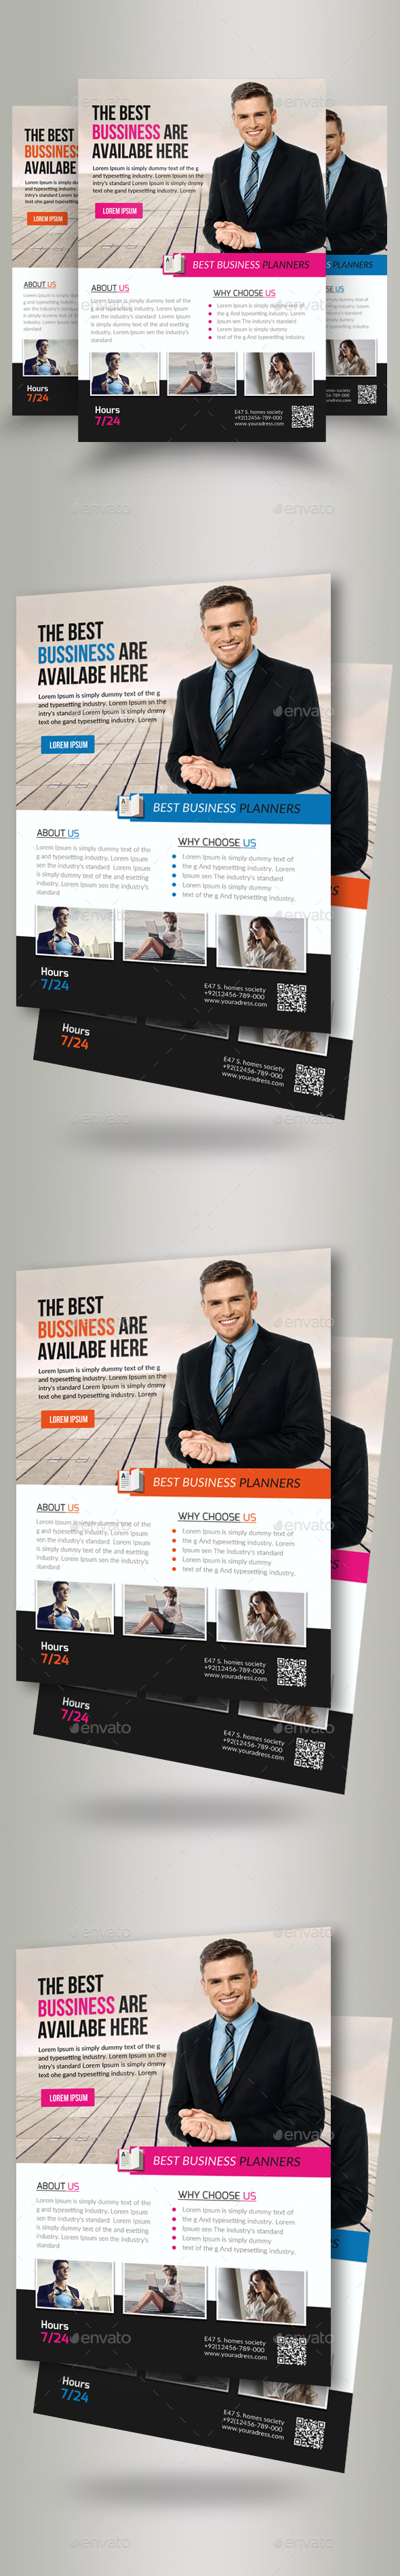 Business Executive Coach Flyer - Corporate Flyers